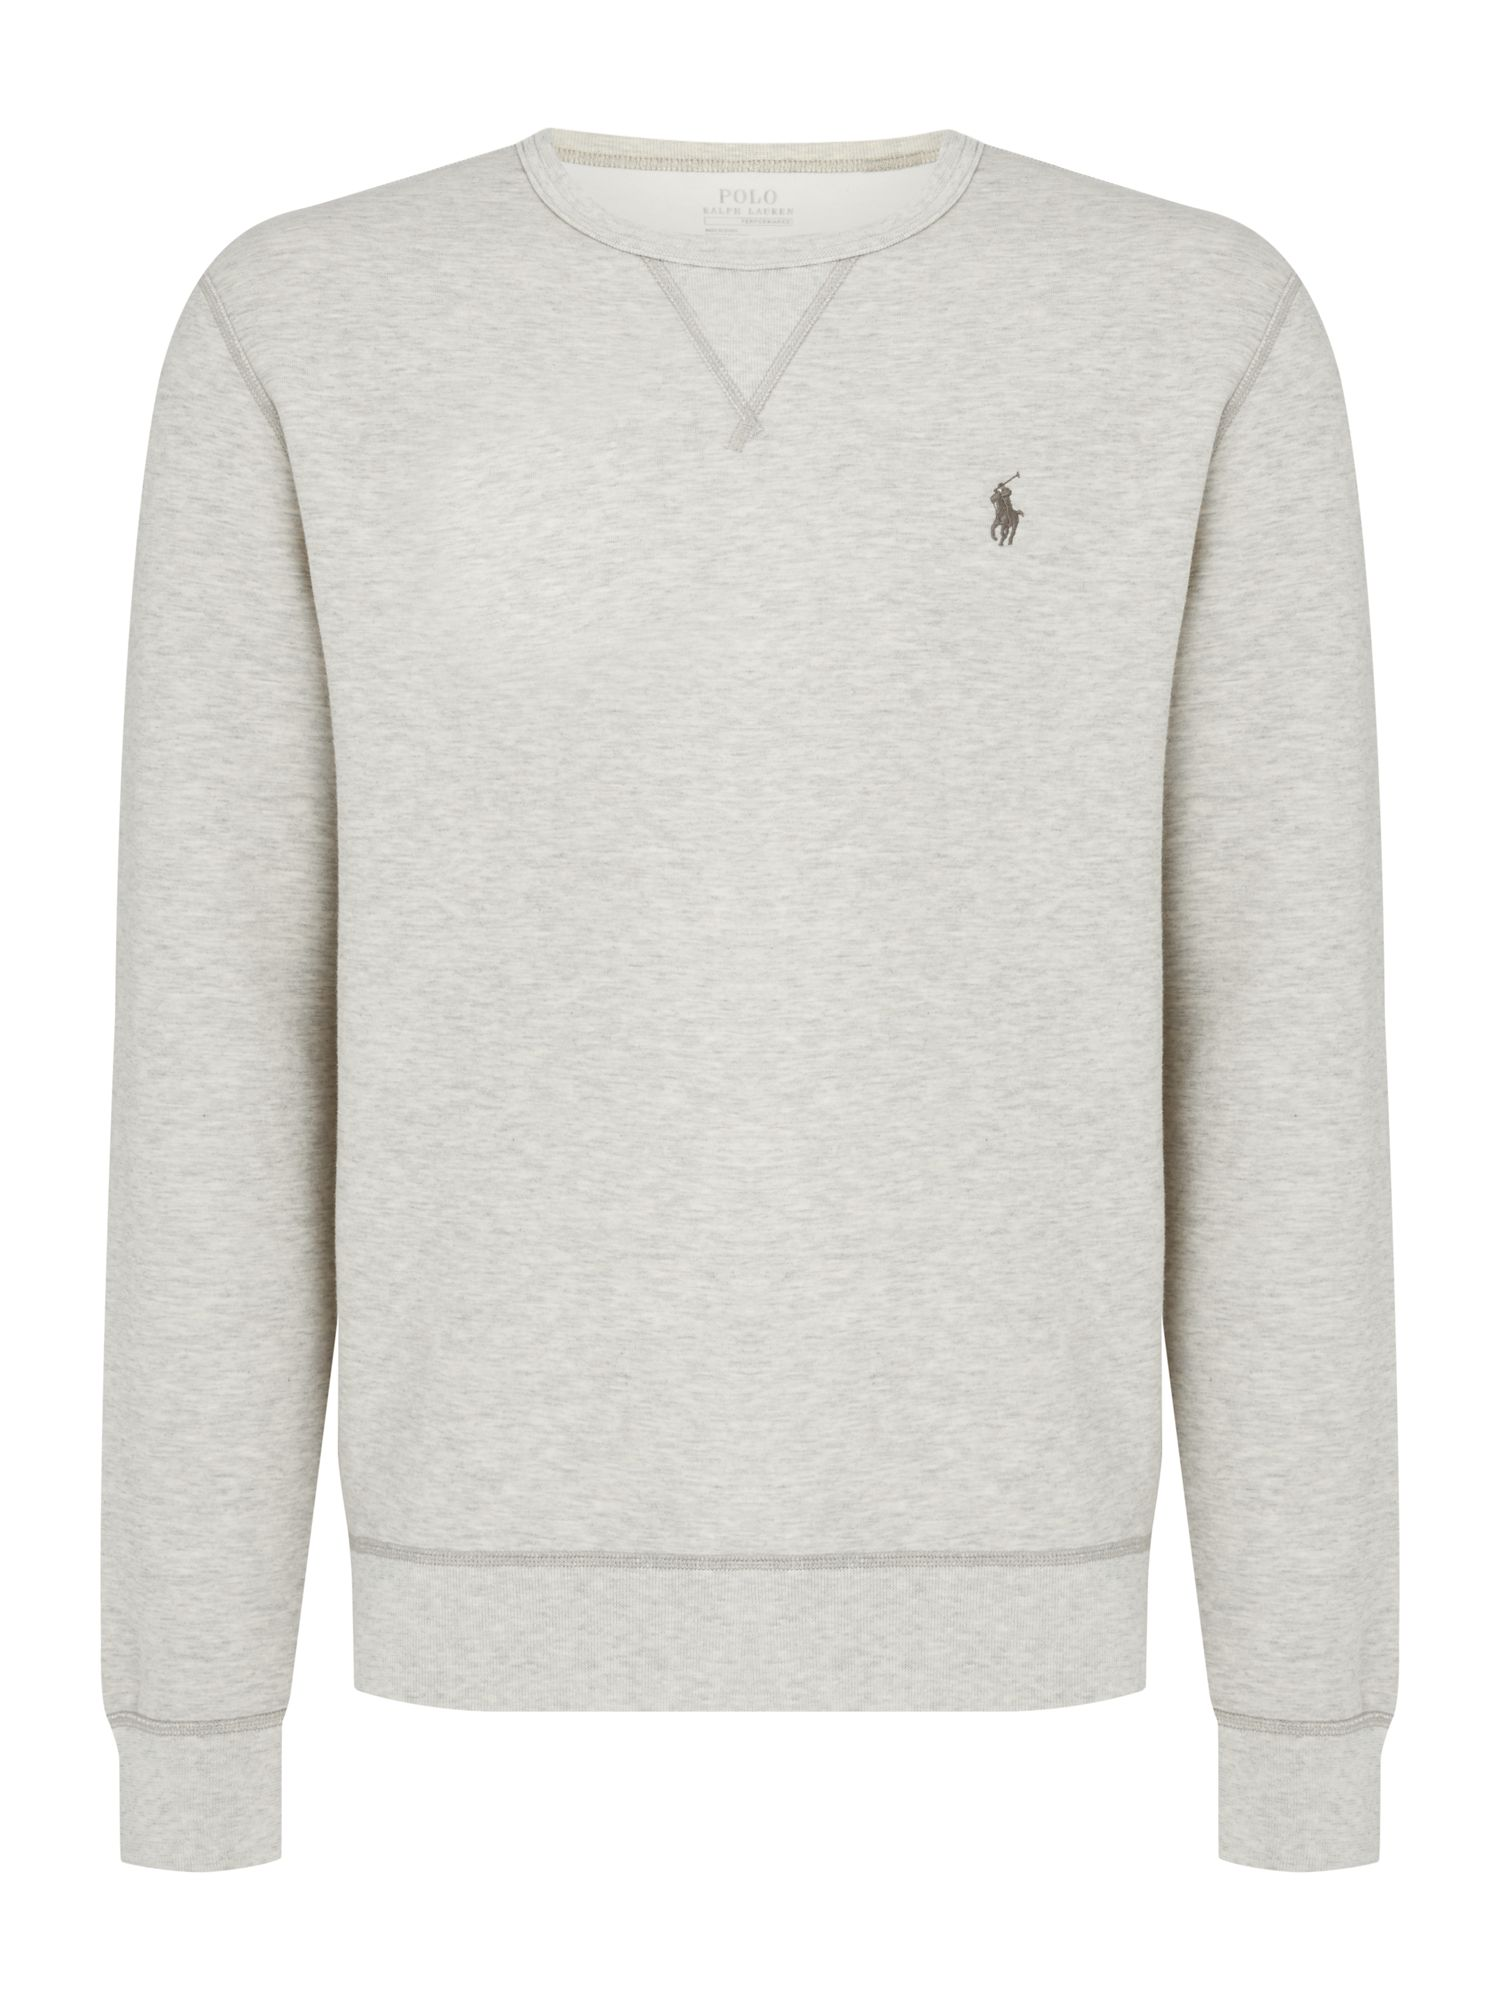 Polo Ralph Lauren Crew Neck Sweat With Heat Transfer Polo Player ...